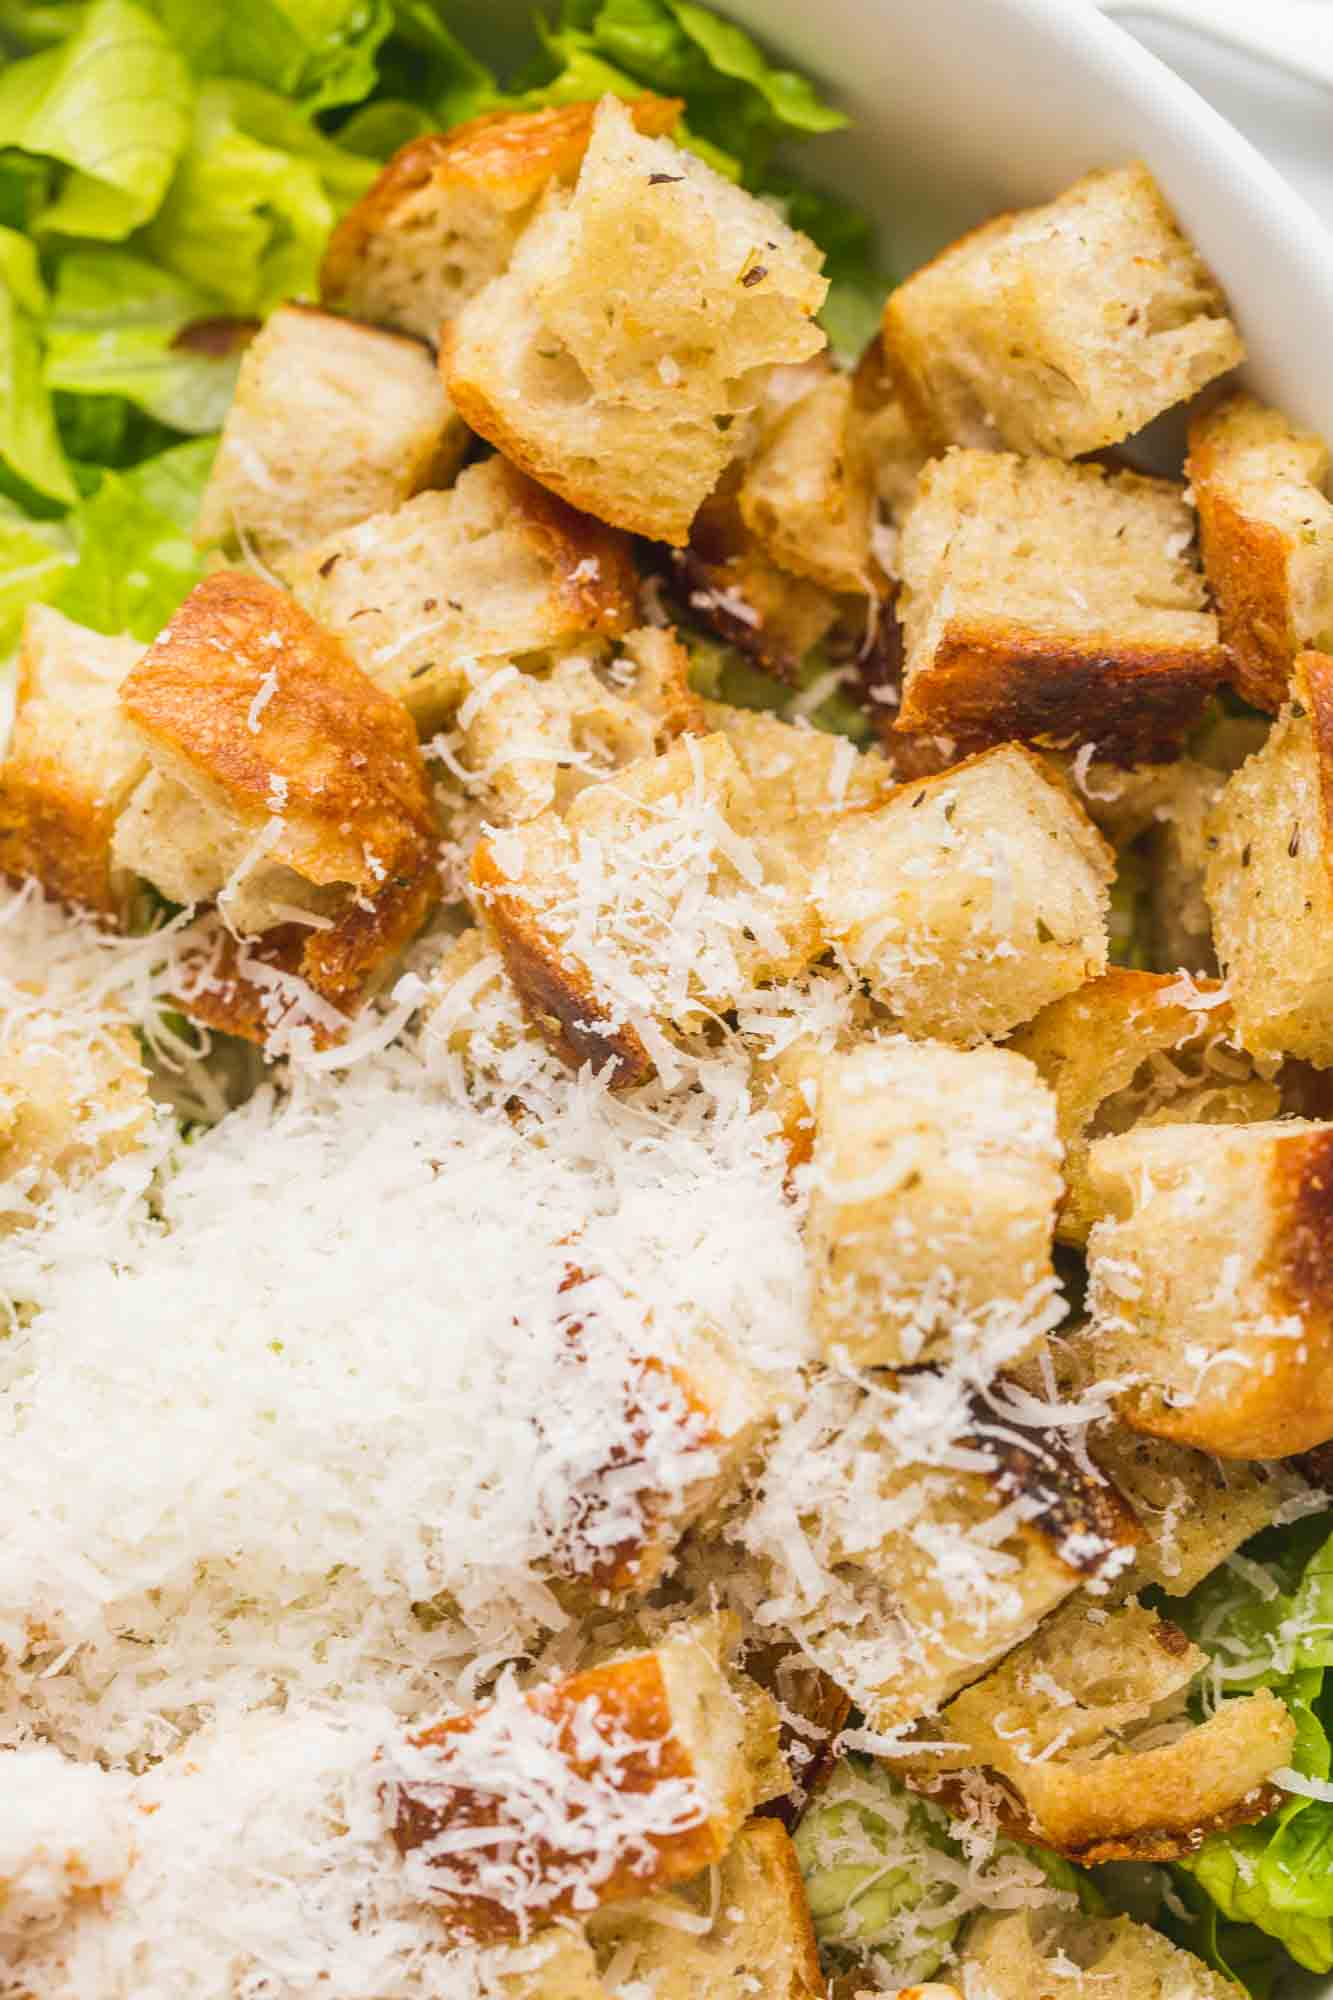 Croutons in a salad with parmesan and romaine